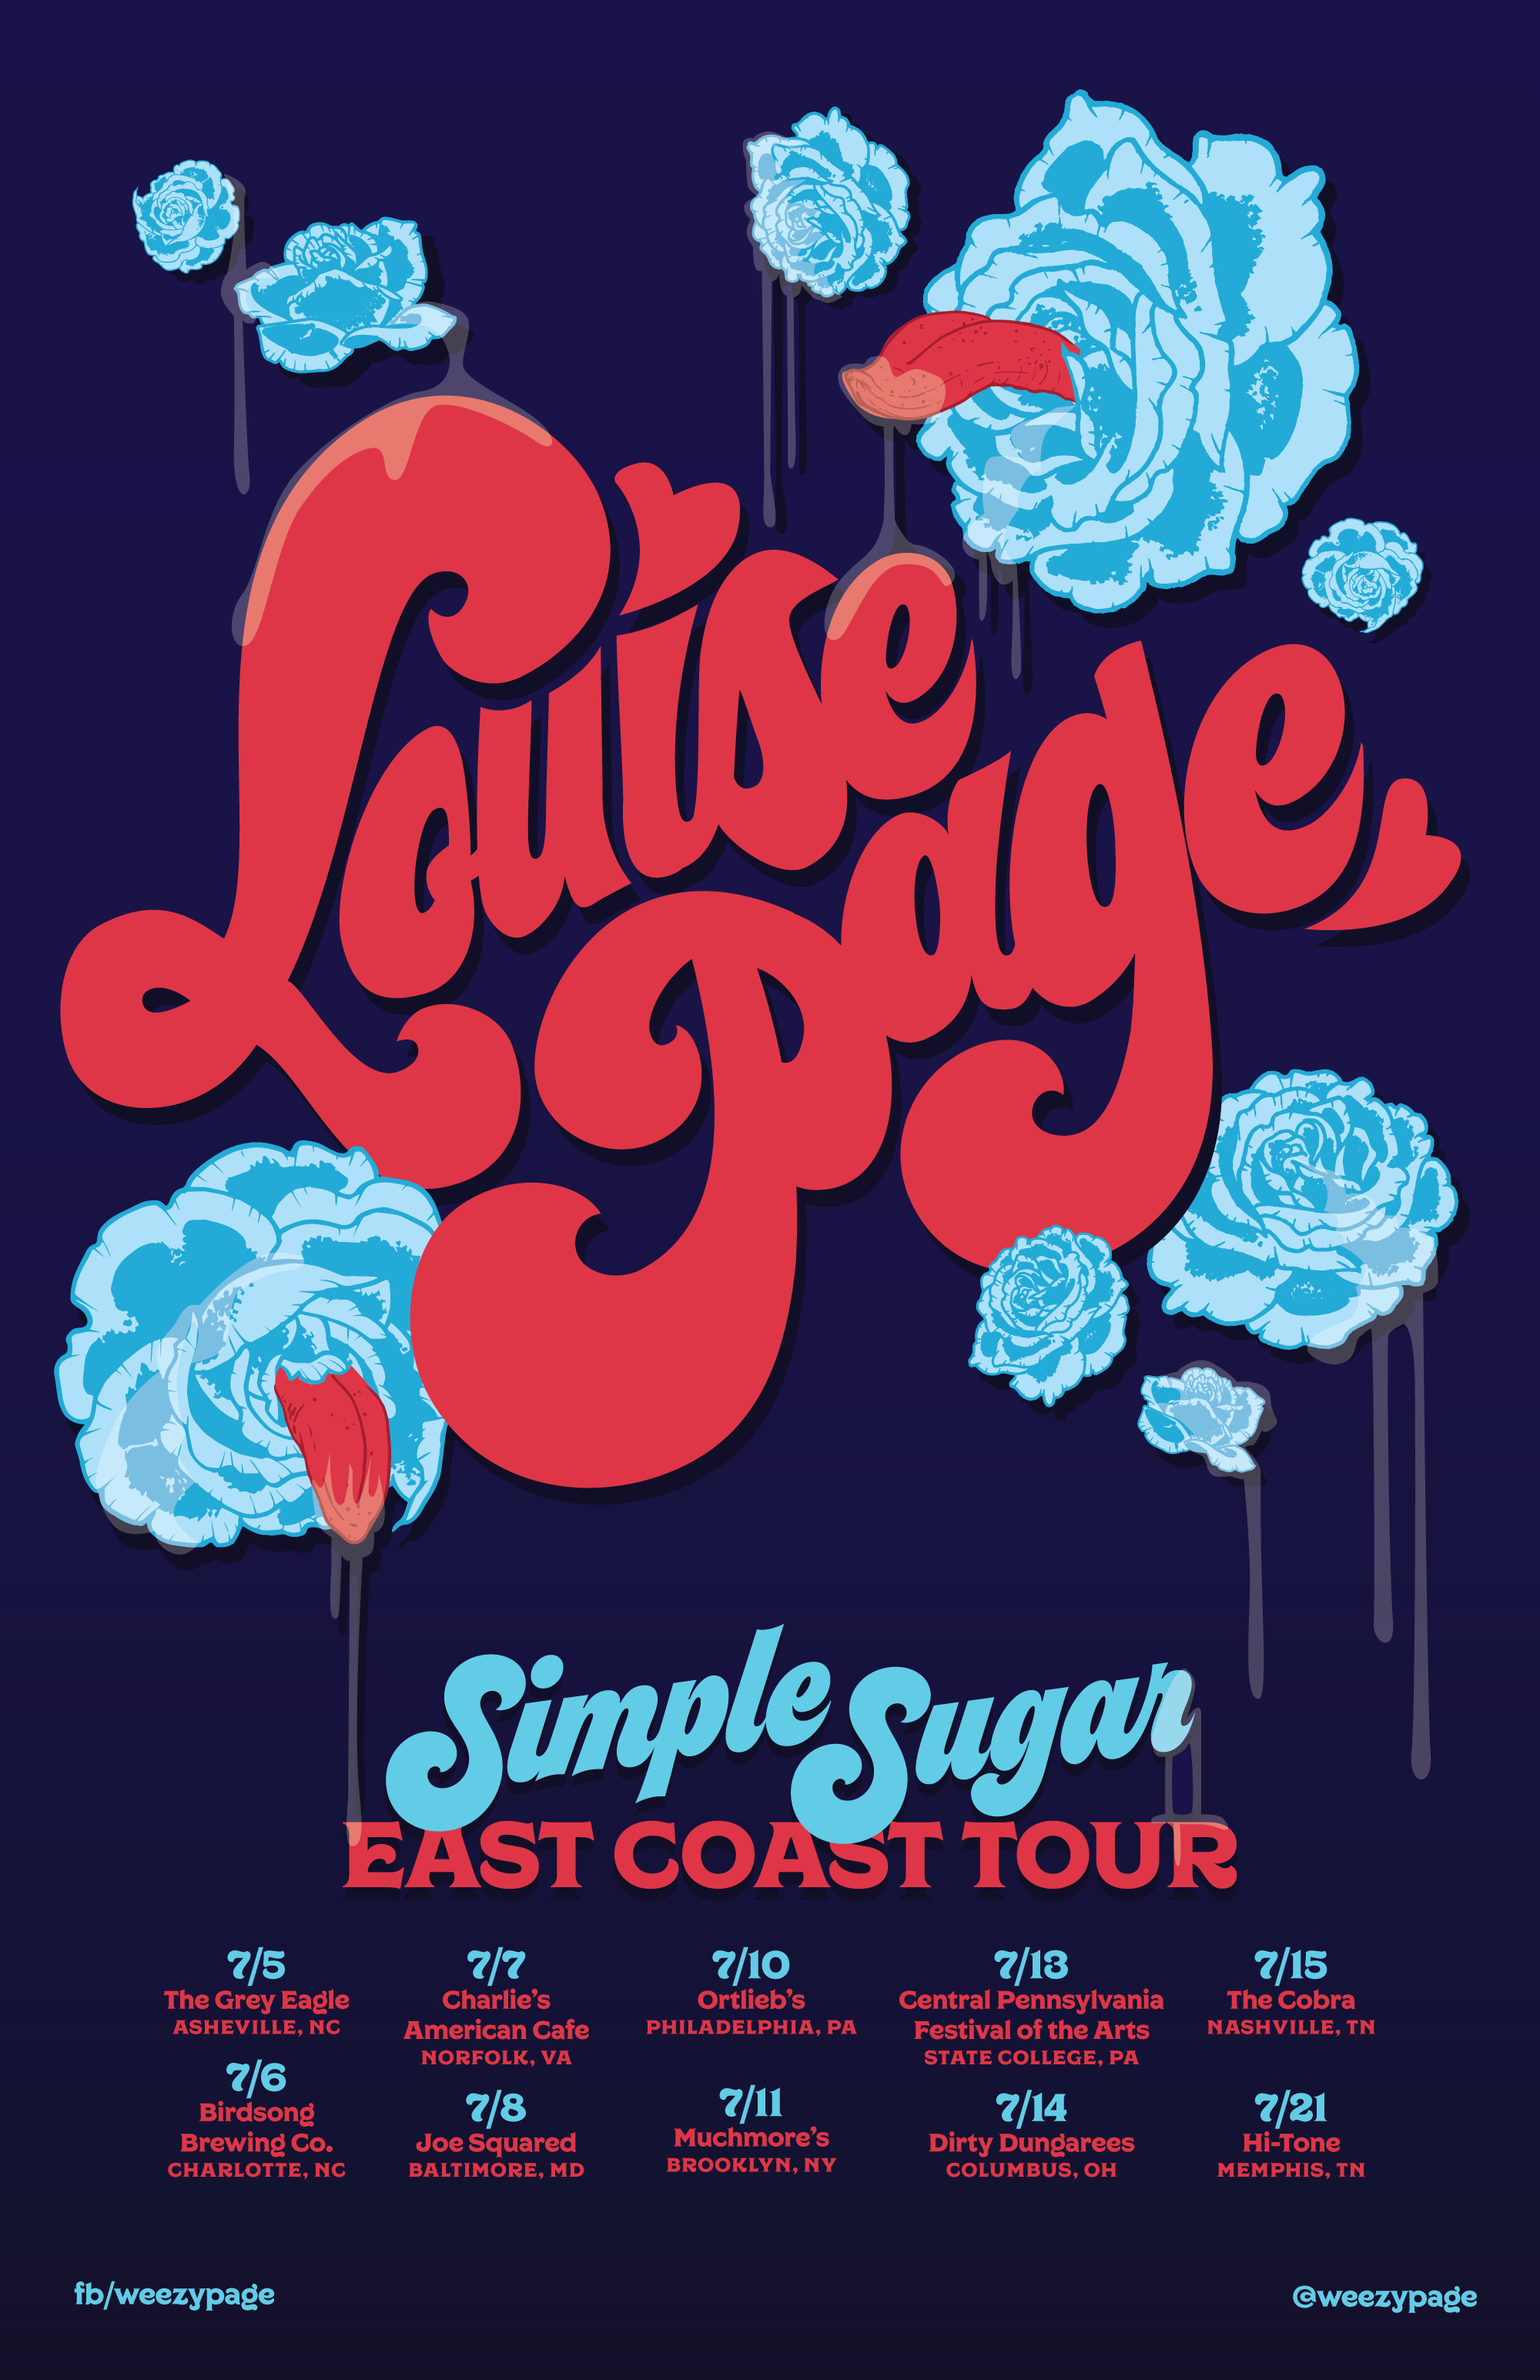 louise-page_tour-poster-web.png